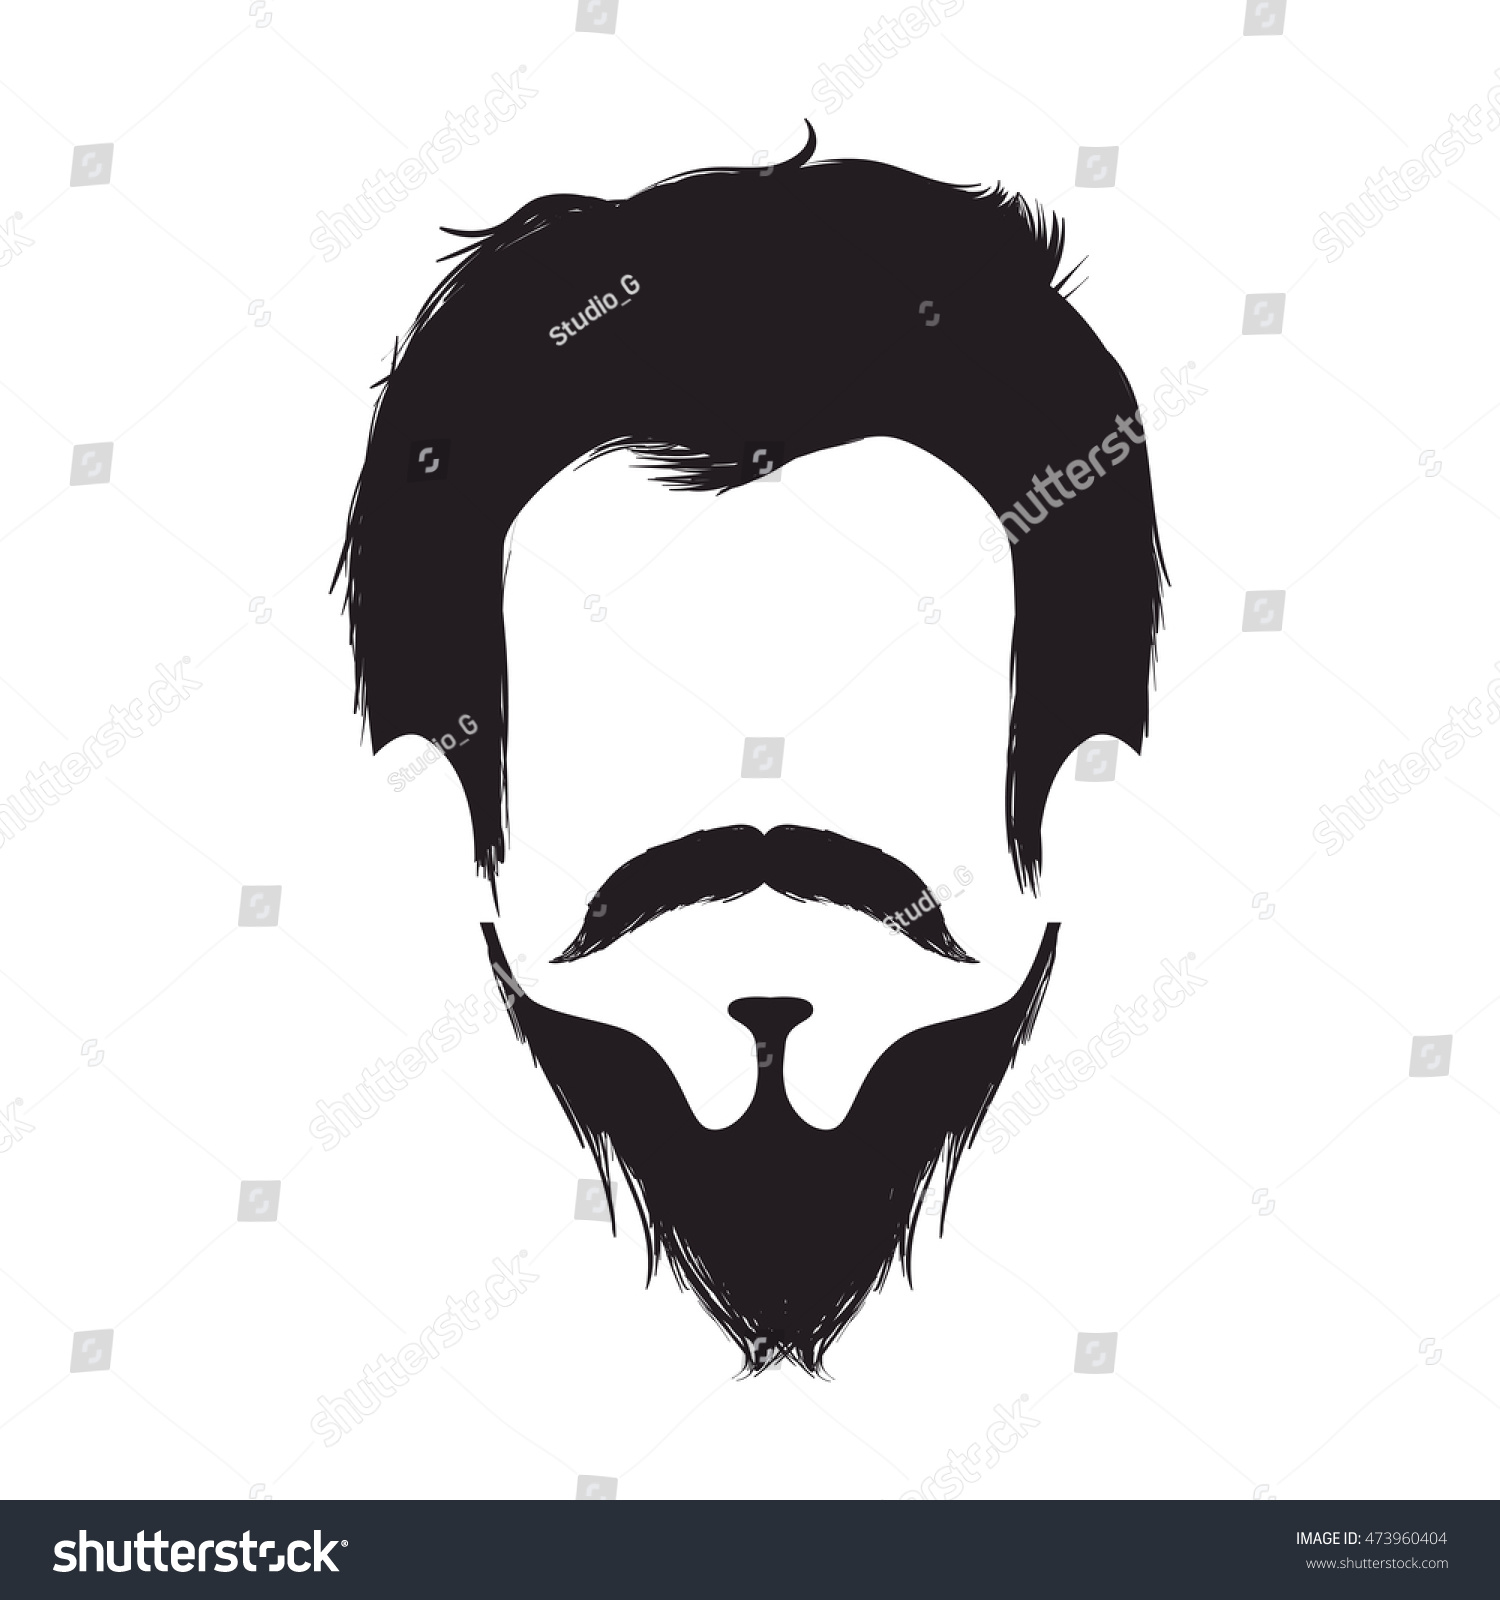 Boy Man Face Hipster Fashion Lifestyle Silhouette Vector Illustration 473960404 Shutterstock